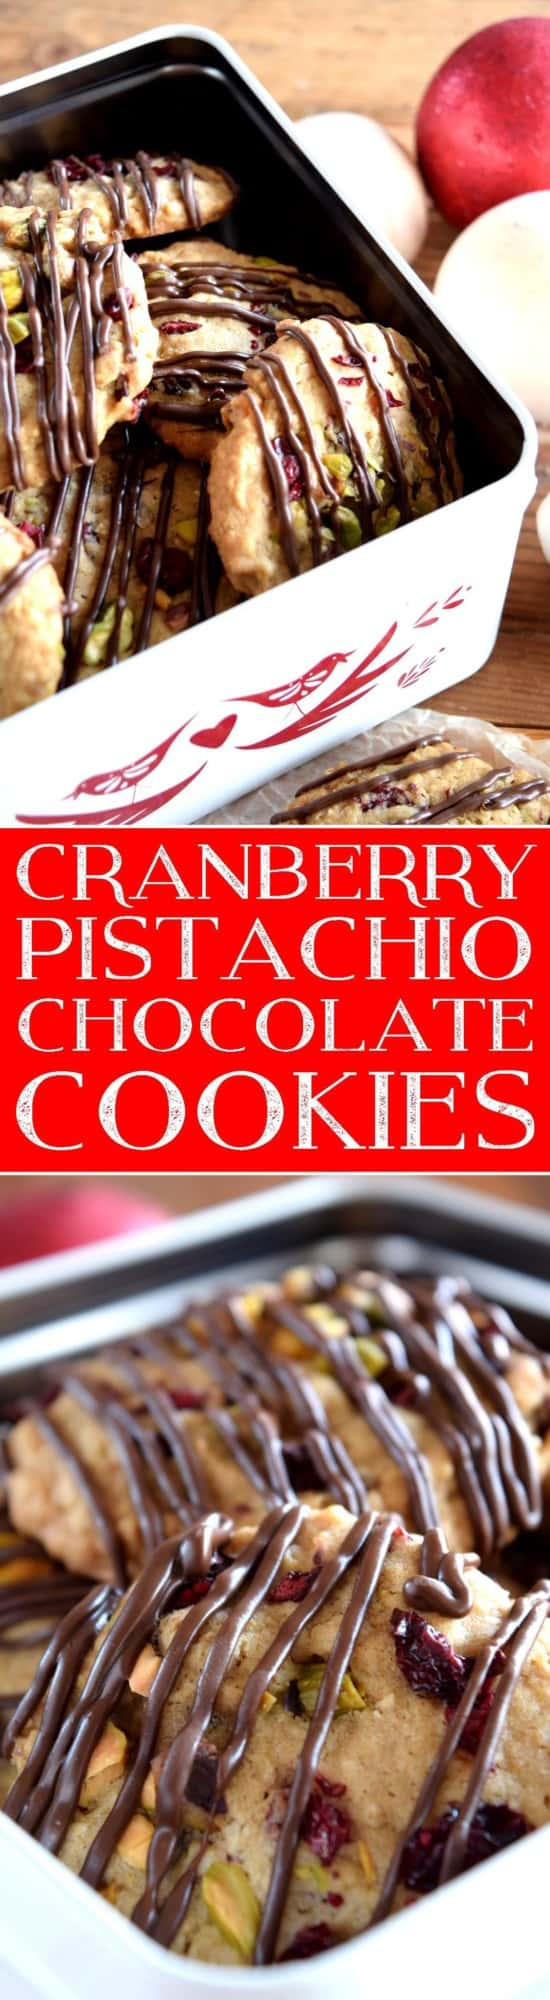 cranberry-pistacio-chocolate-cookies